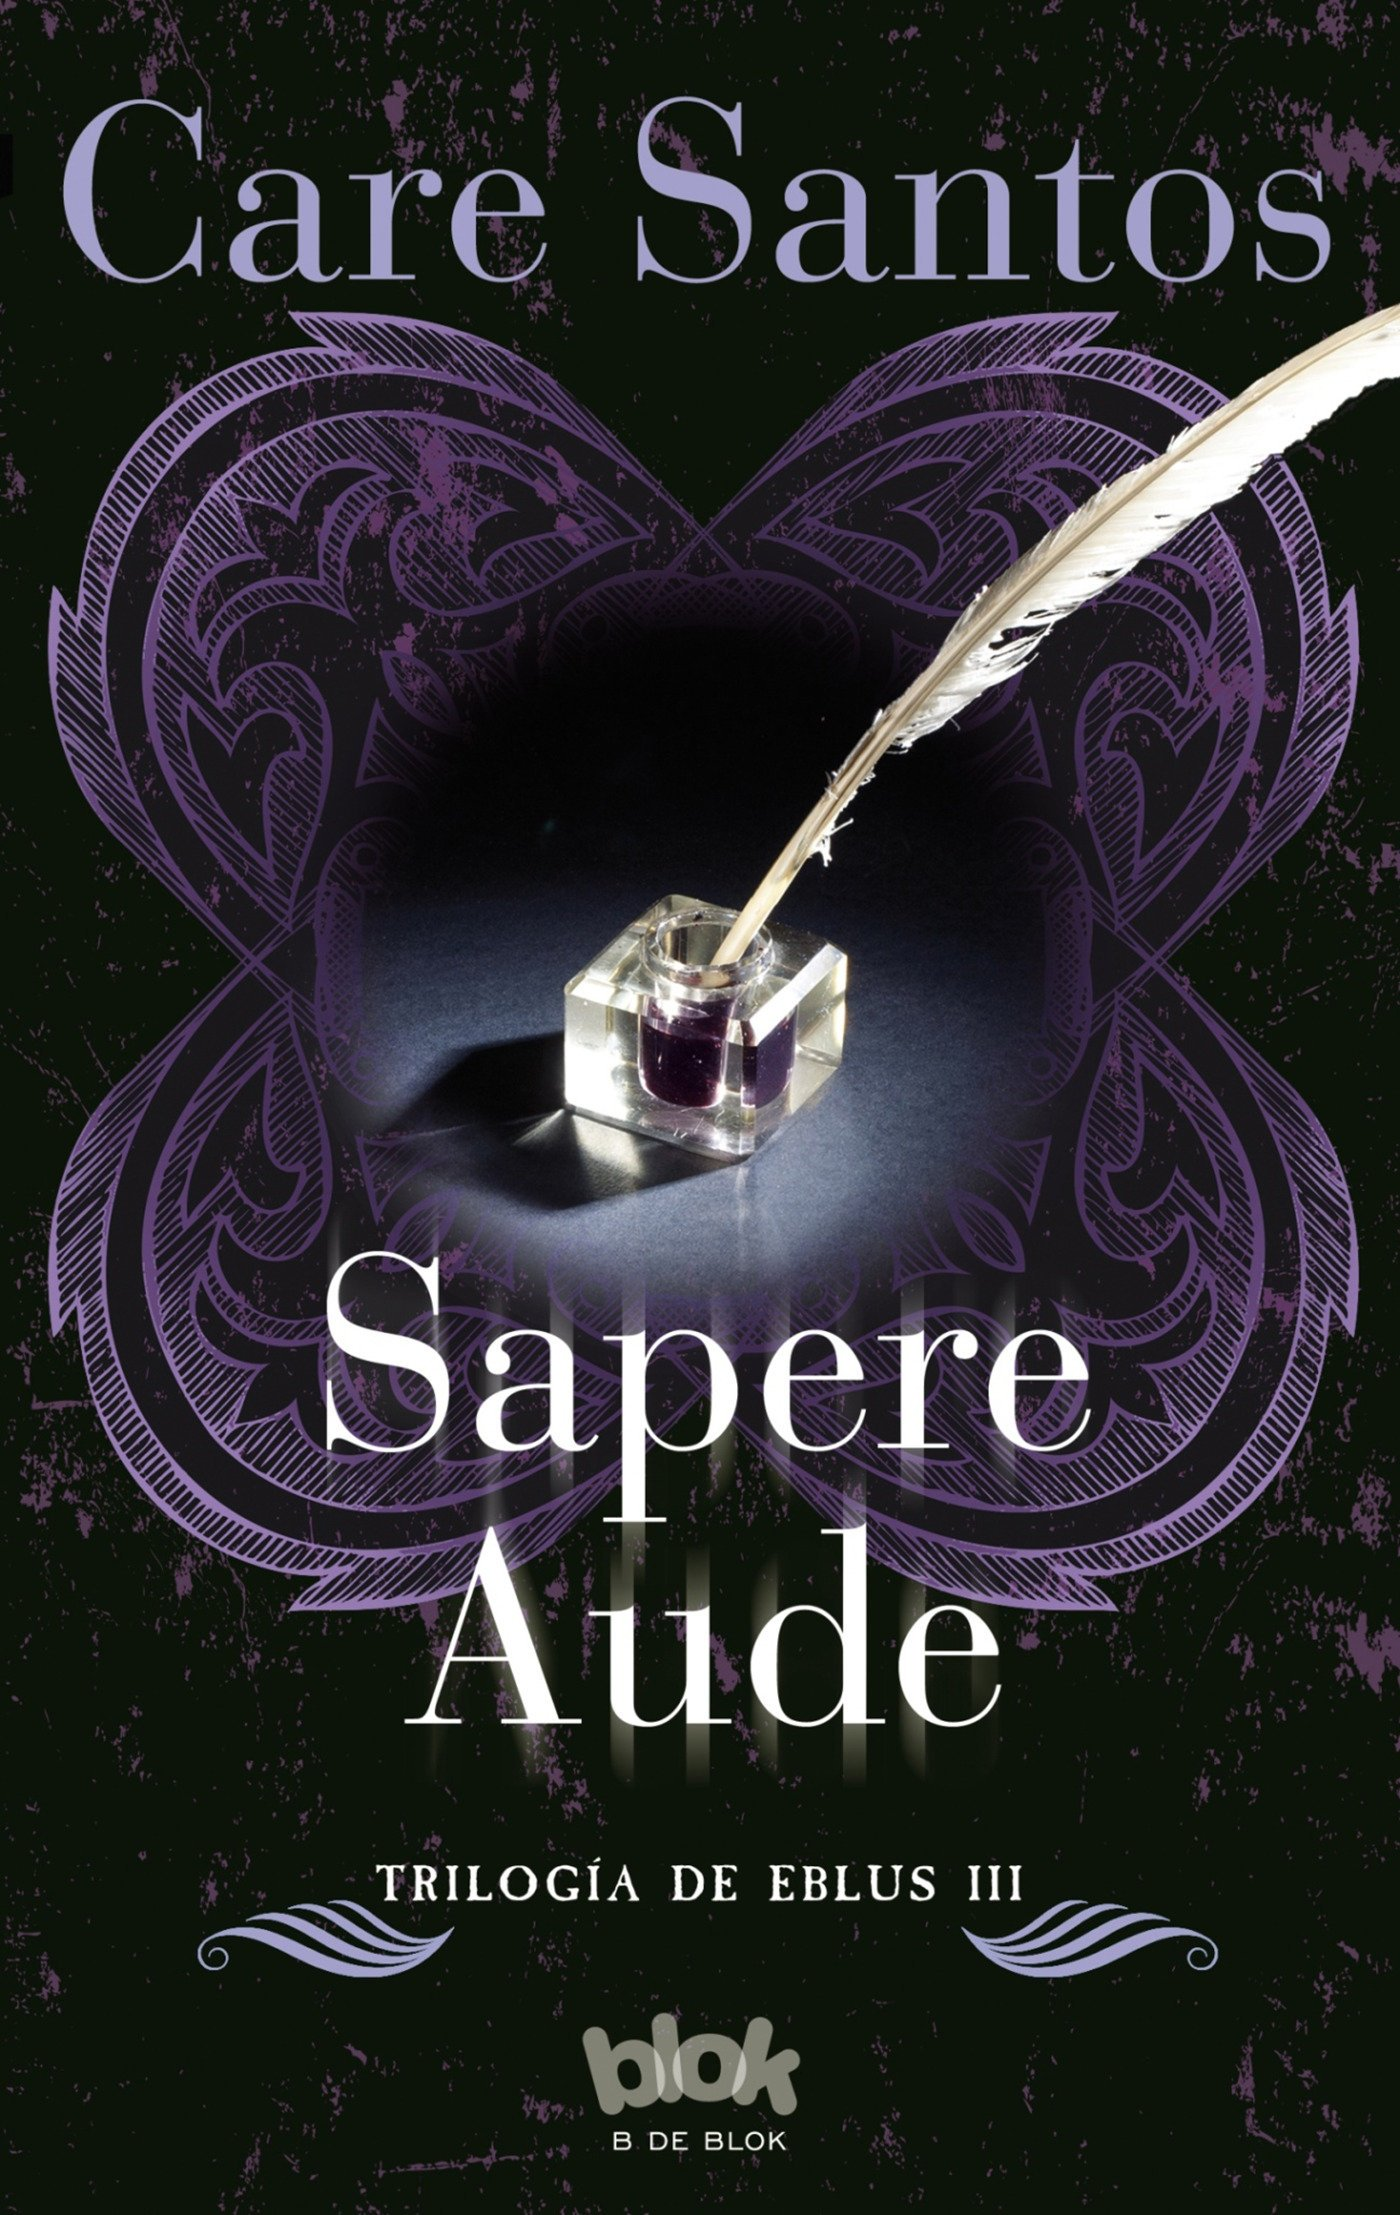 Amazon.com: Sapere Aude / Sapere Audet (Trilogía de Eblus) (Spanish Edition) (9788416075812): Care Santos: Books